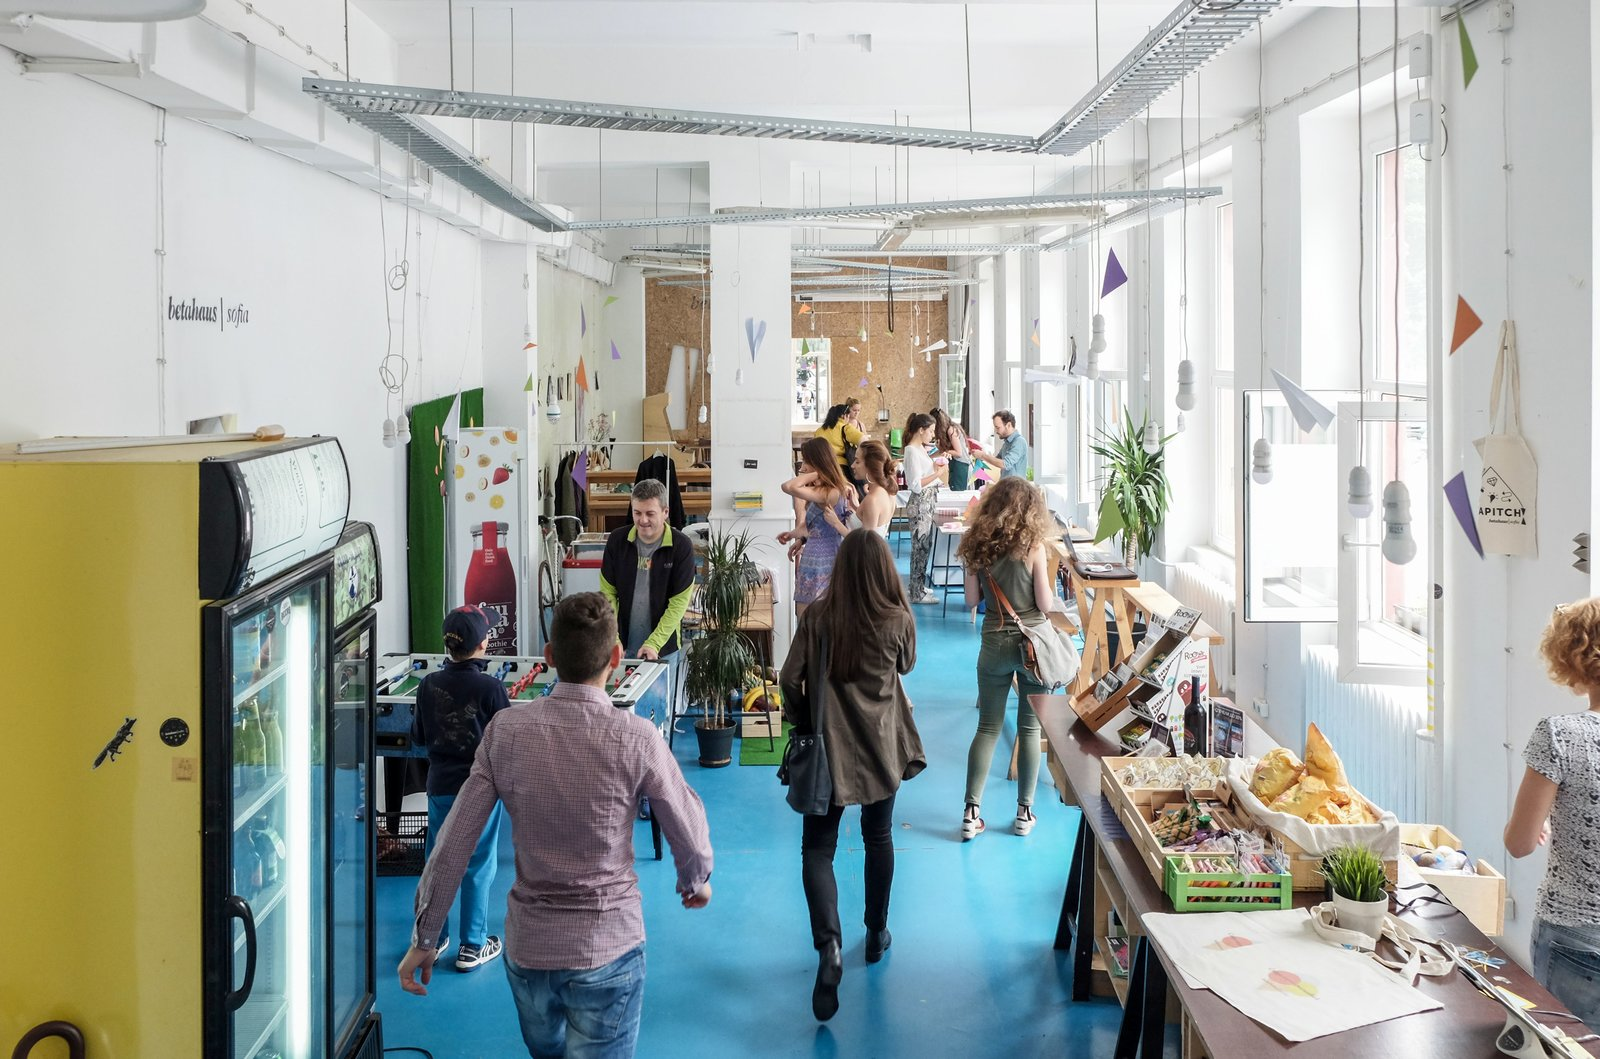 The  Photo 5 of 11 in These 6 Collaborative Coworking Spaces Will Give you Serious Office Envy